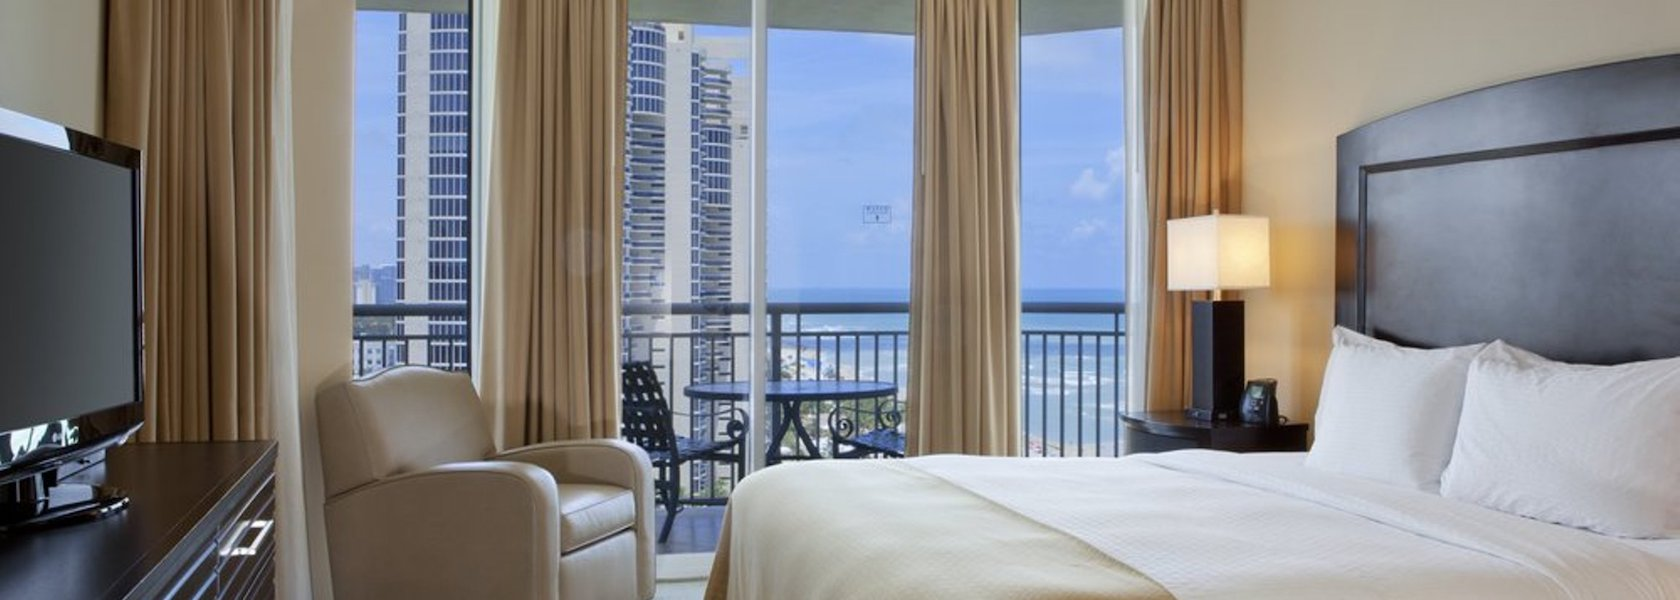 King bed in room overlooking the Atlantic Ocean